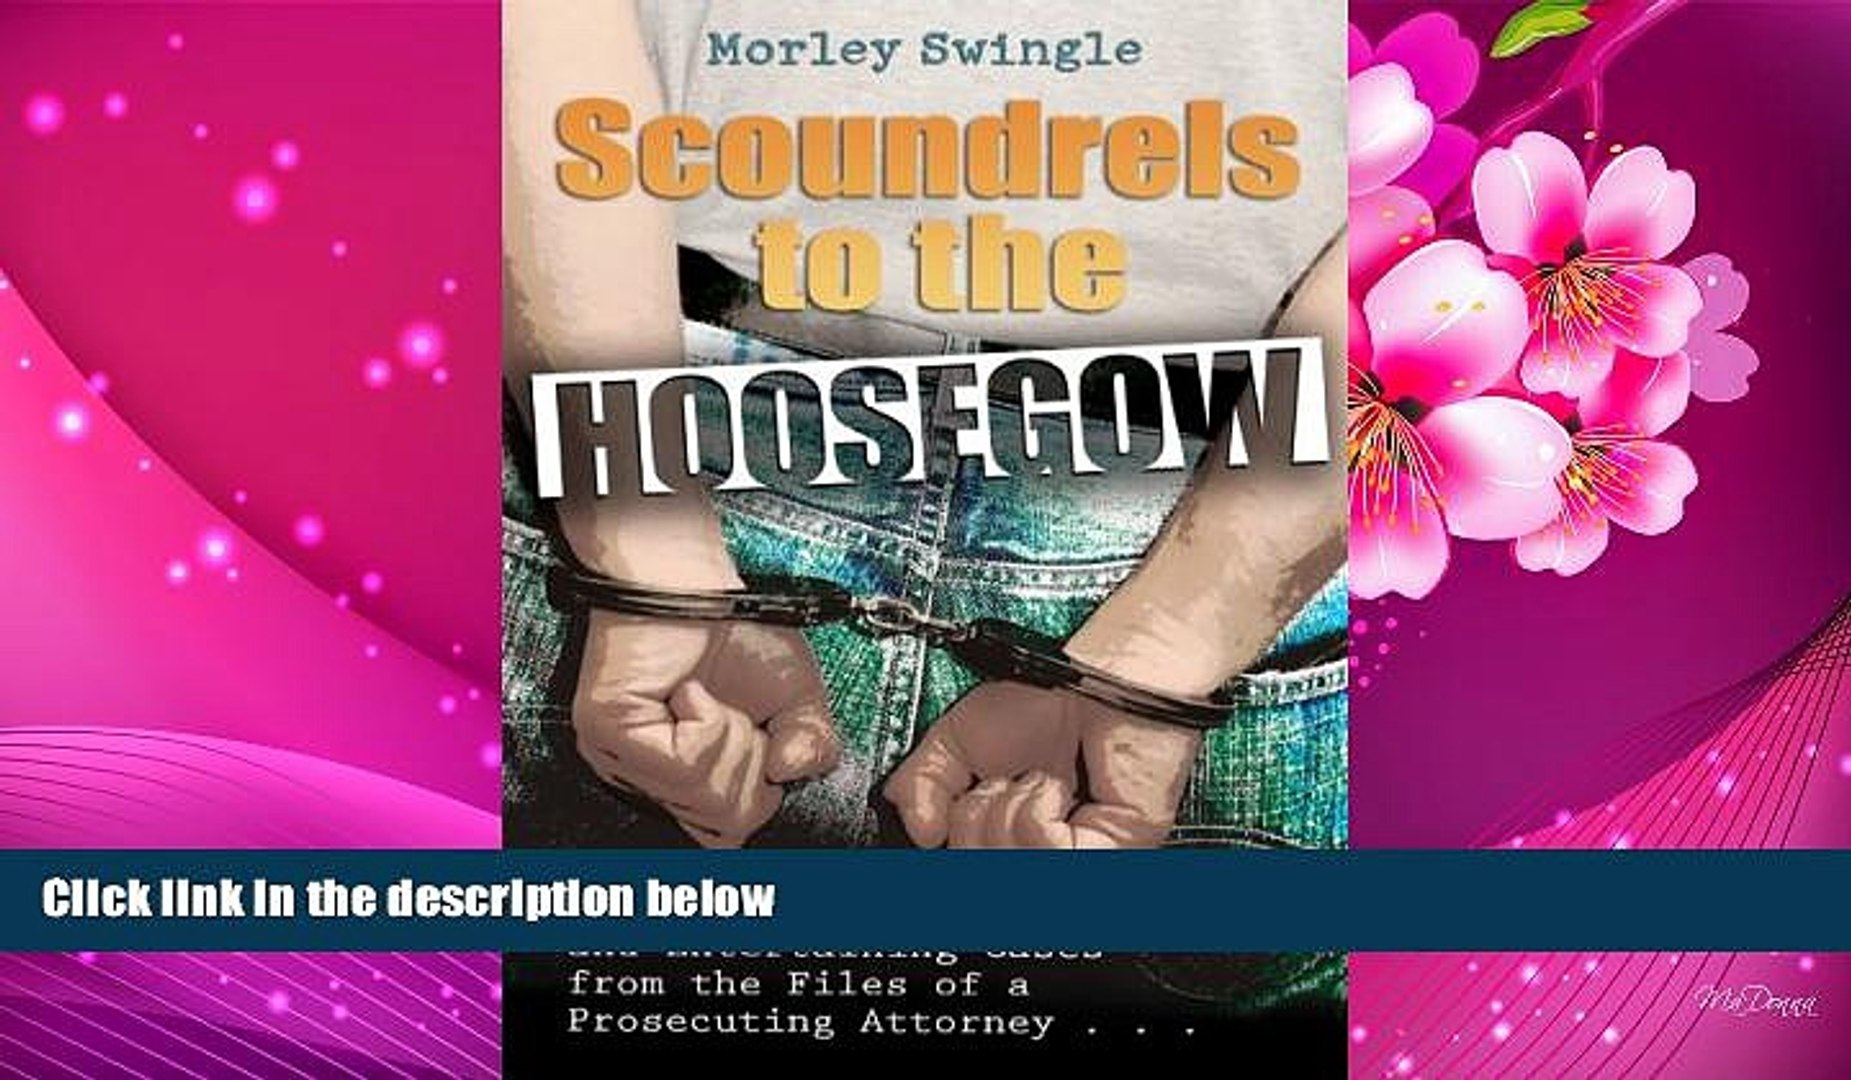 DOWNLOAD EBOOK Scoundrels to the Hoosegow: Perry Mason Moments and Entertaining Cases from the